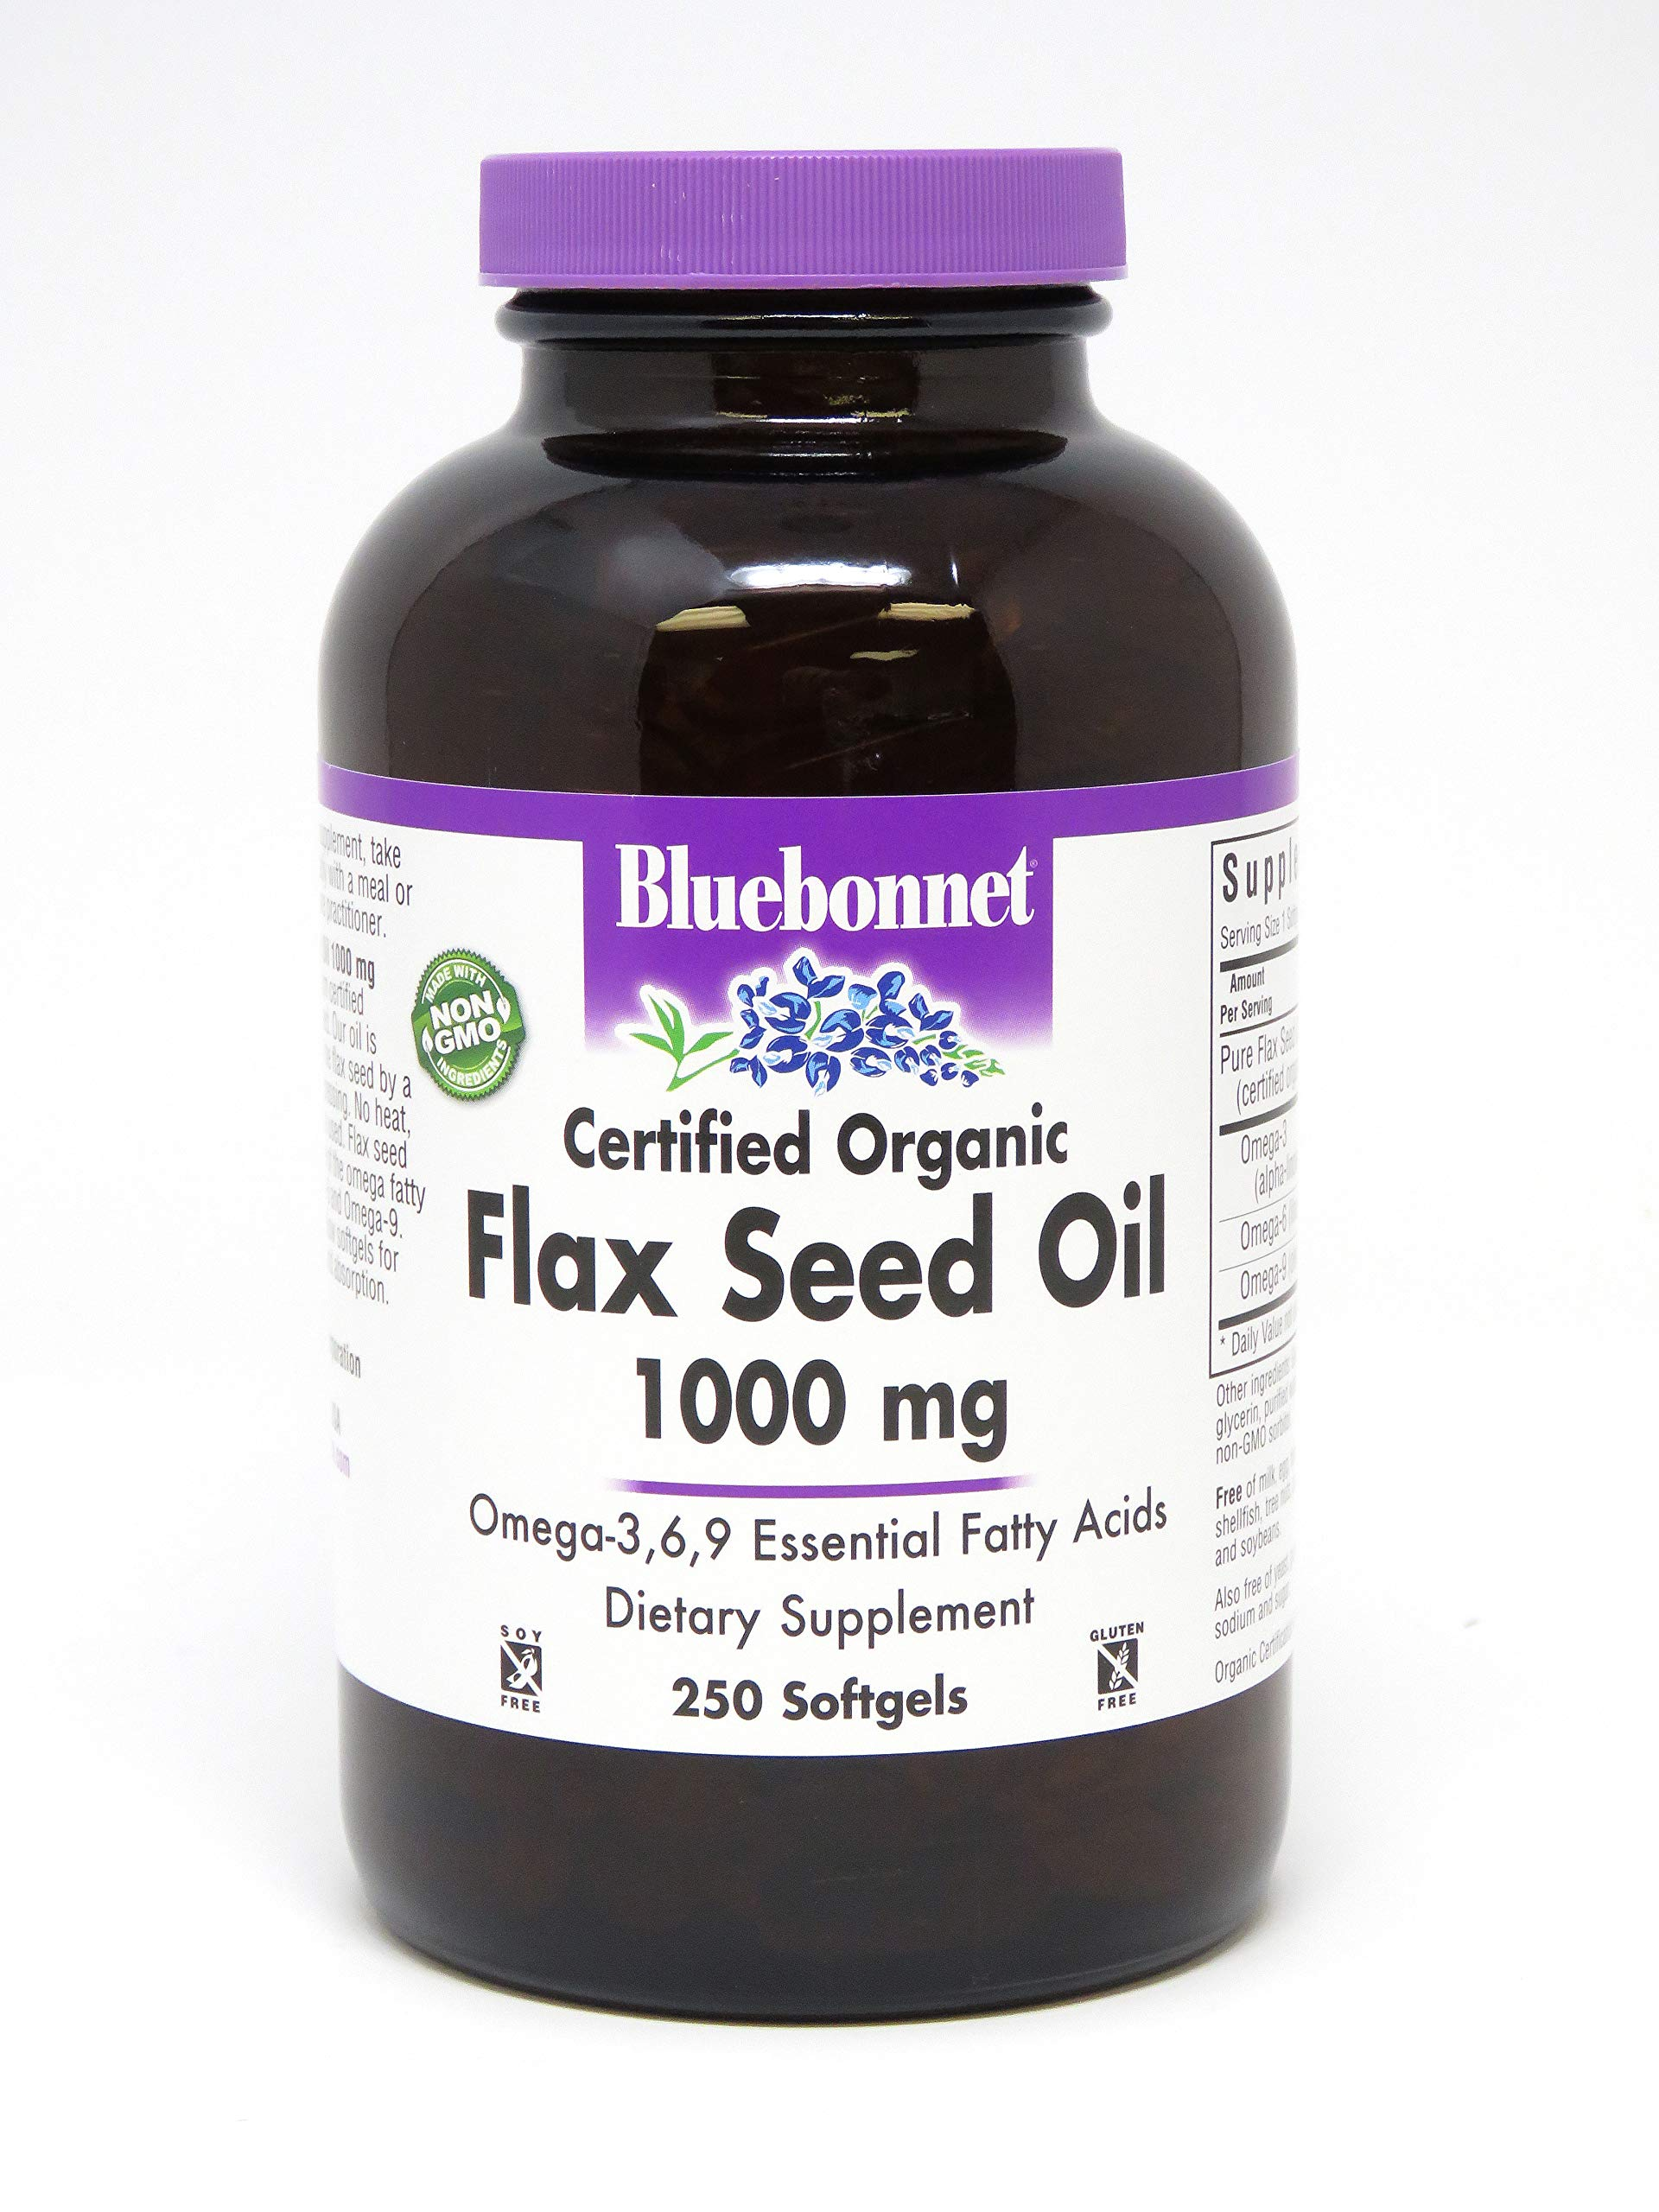 Bluebonnet Nutrition Flax Seed Oil Certified Organic 1000 mg, 250 Softgels